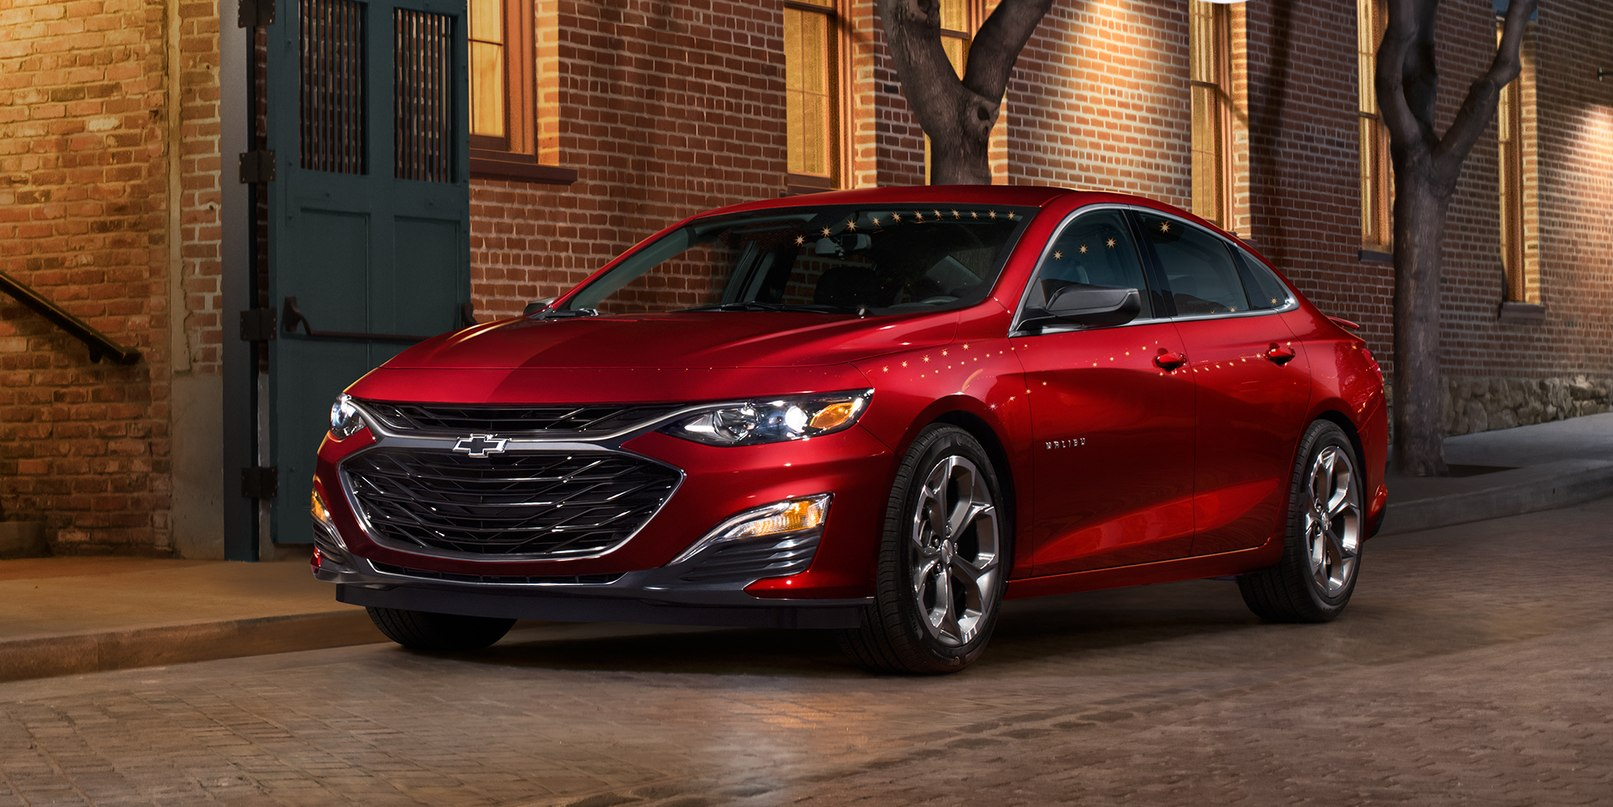 2019 Chevrolet Malibu Coming Soon near North County, CA